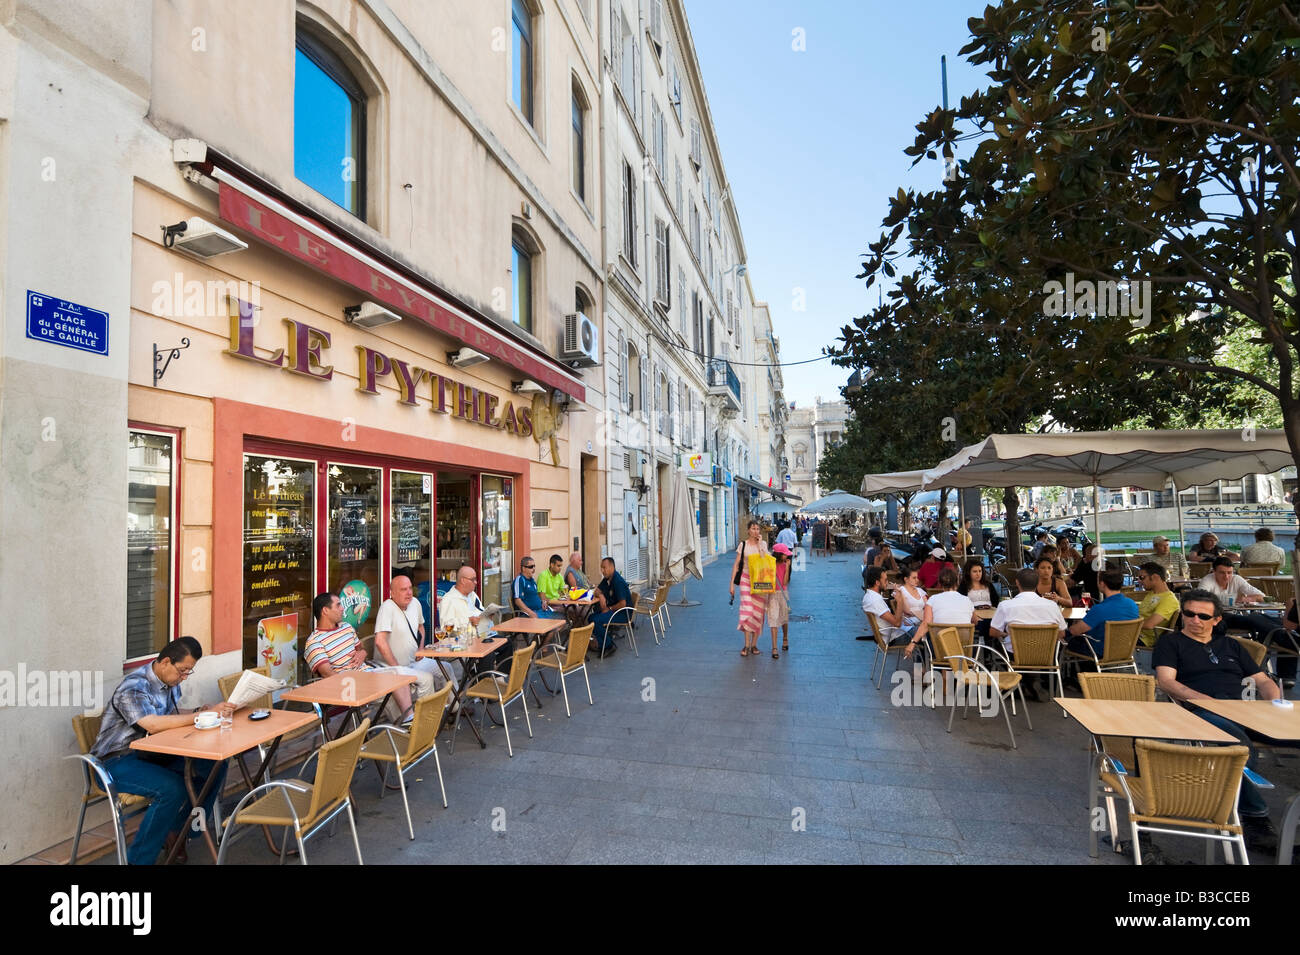 Cafe bar in the place du general de gaulle vieux port district stock photo 19327571 alamy - Restaurant le vieux port marseille ...